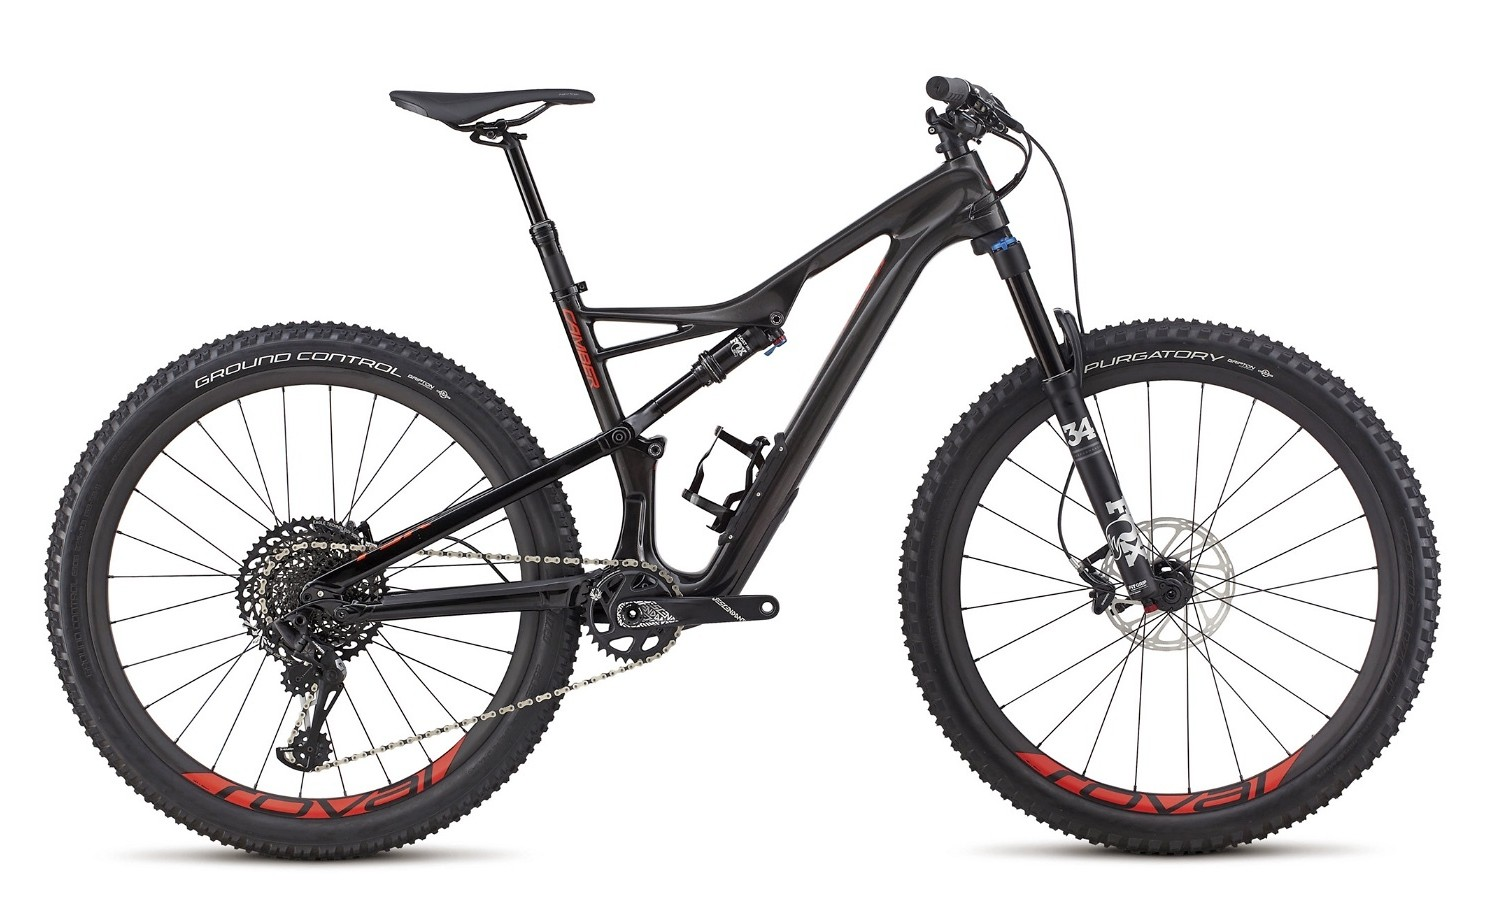 2018_Specialized_Mens_Camber_Expert_27.5